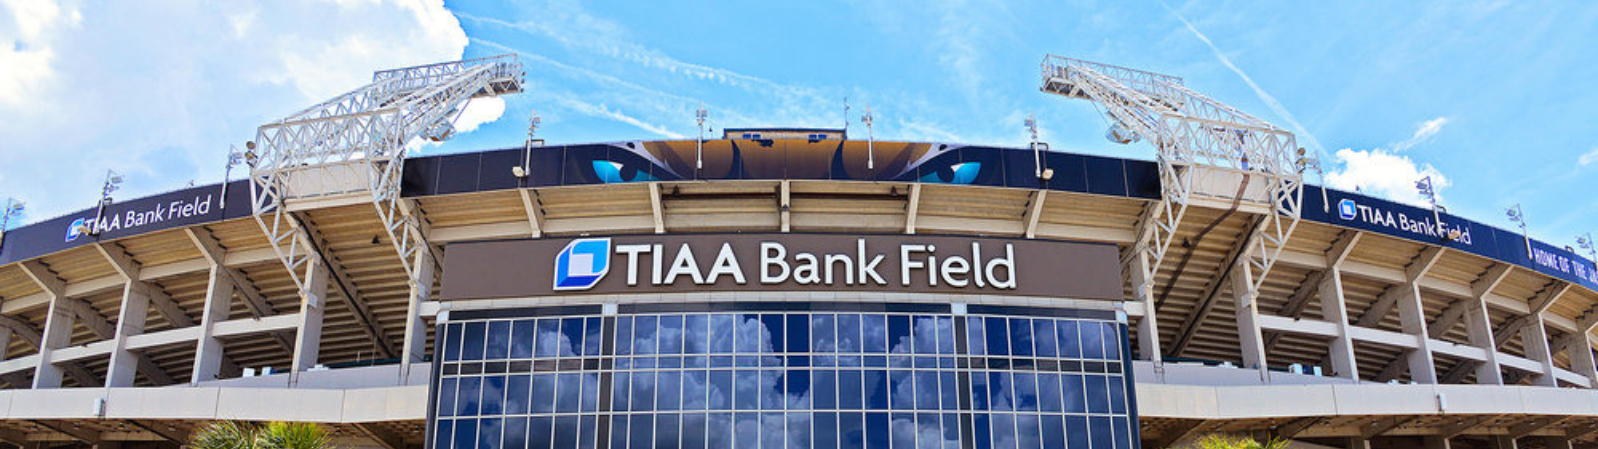 TIAA Bank Field Stadium